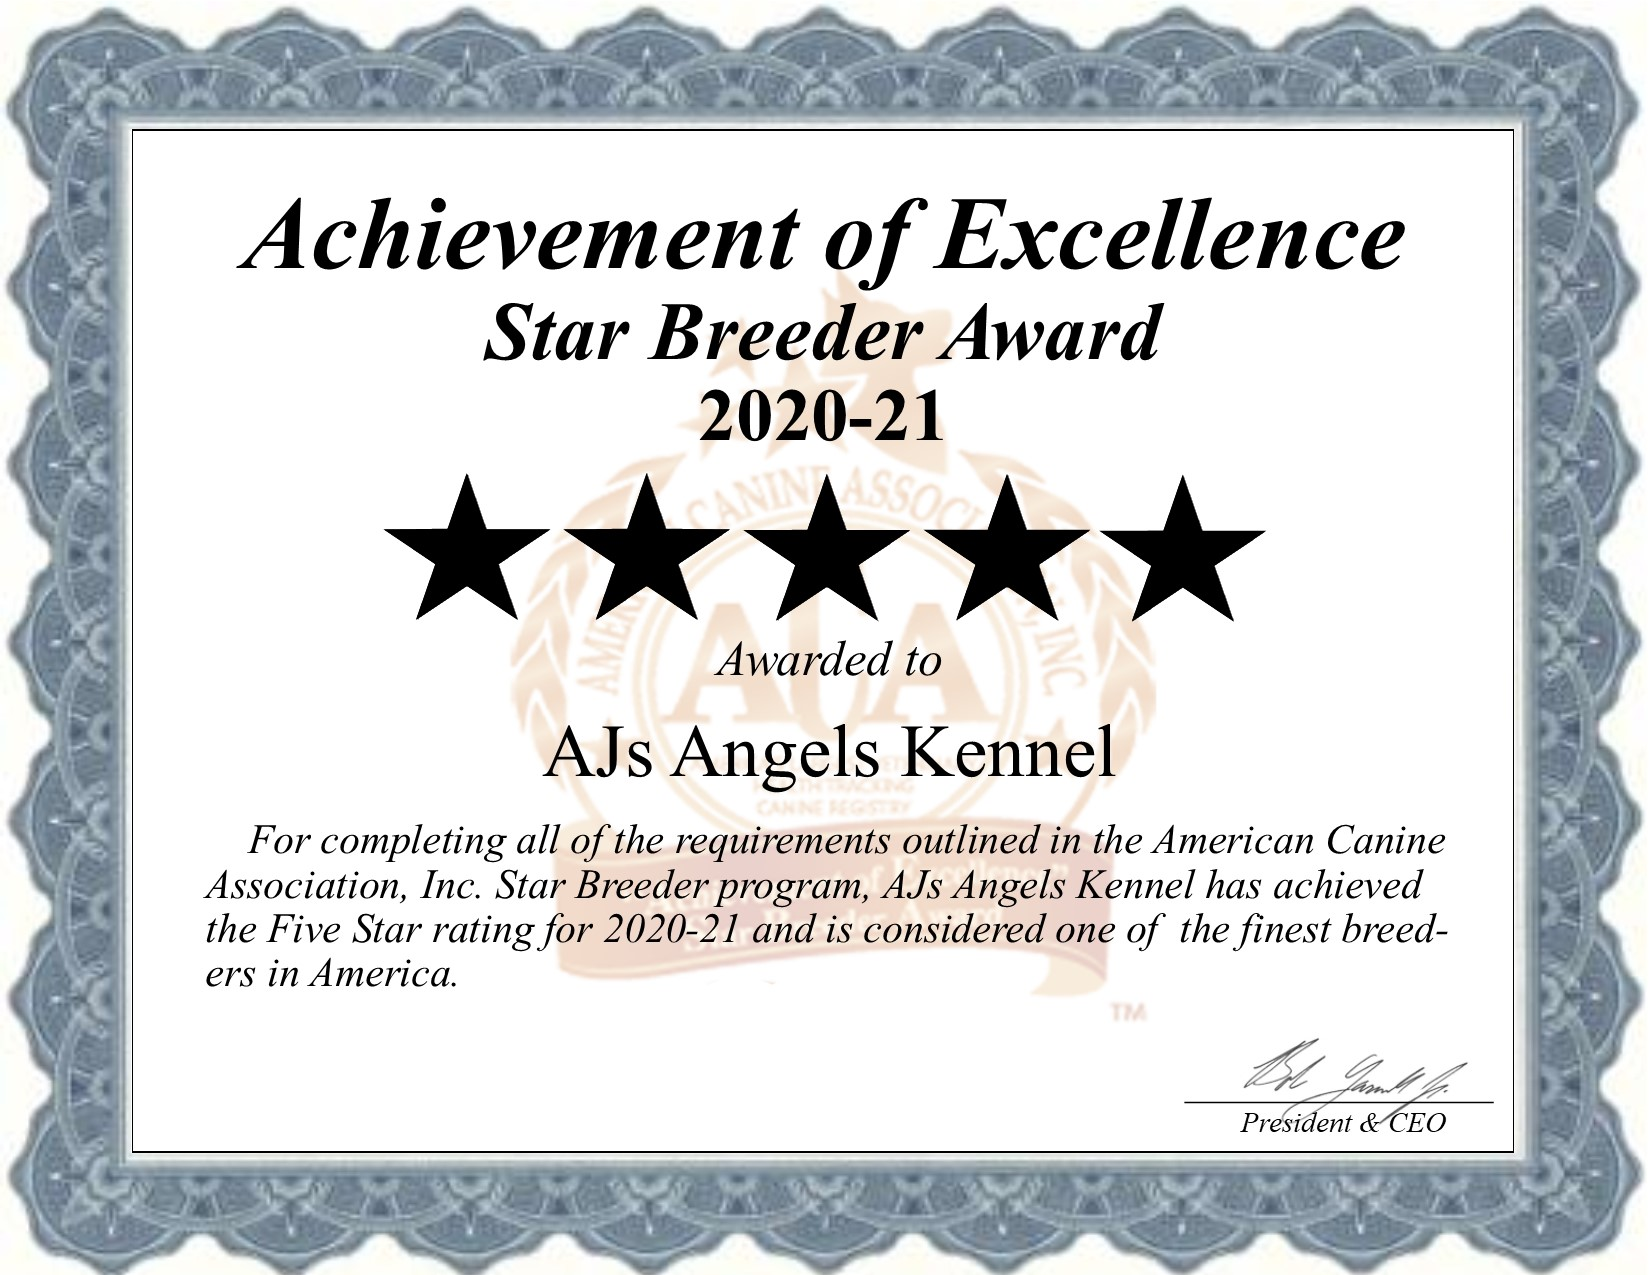 aj's, ajs, angels, puppies, kennel, kennels, dog, breeder, certificate,, aj's-angels, cushing, mn, minnesota, usda, no, 41a0484, 41-A-0484, breeding, pup, puppy, mill, puppymill, ajs-kennels, dogs, inspections, violations, veterinary, reports